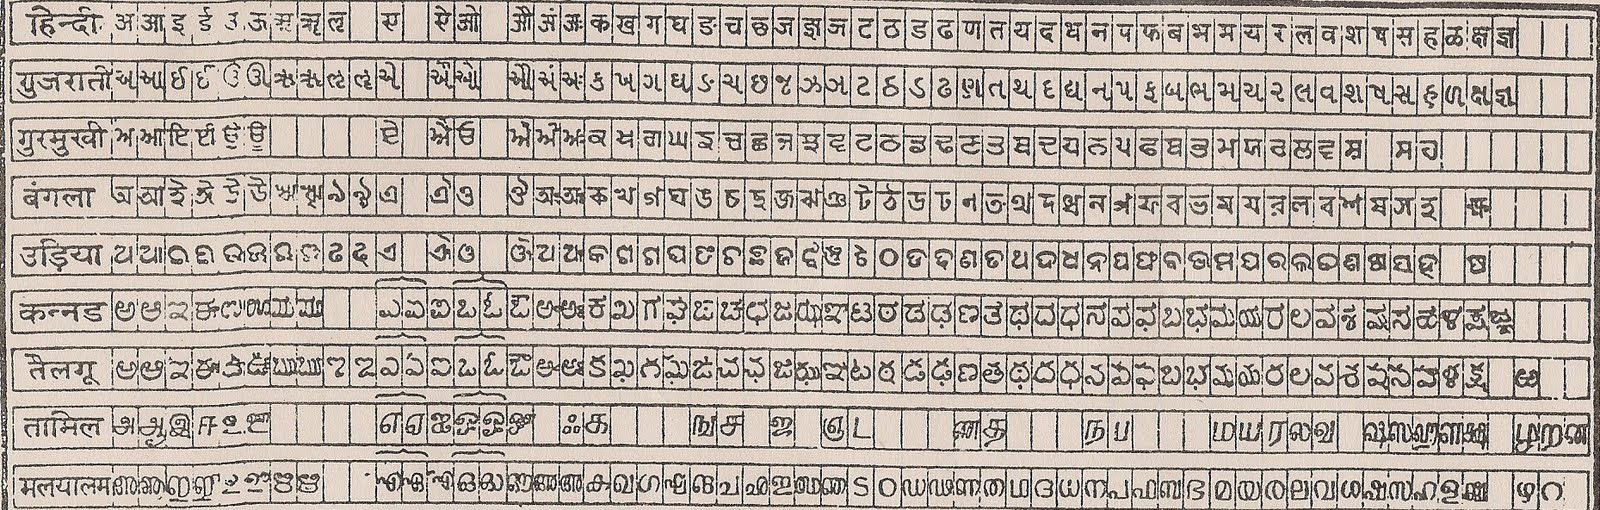 Why the Devnagari Hindi <b>Script</b>